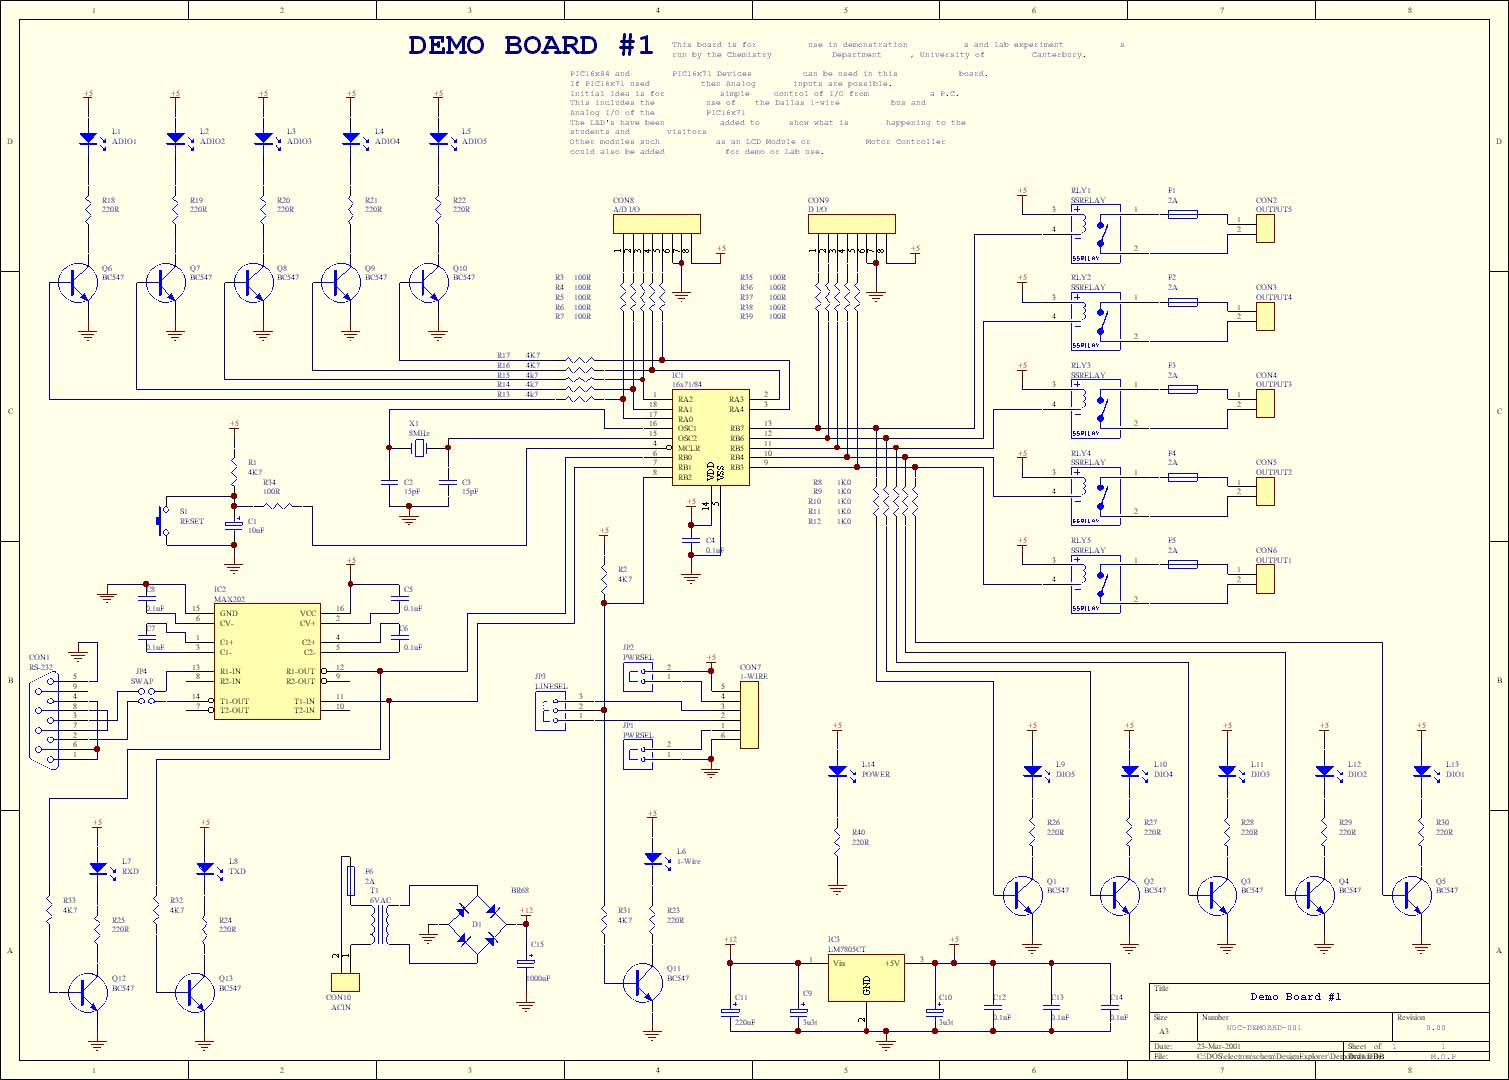 Circuits Diagram Microcontrollor At89c2051 And Hbridge Circuit H Bridge Submenu Rh Systembus Com